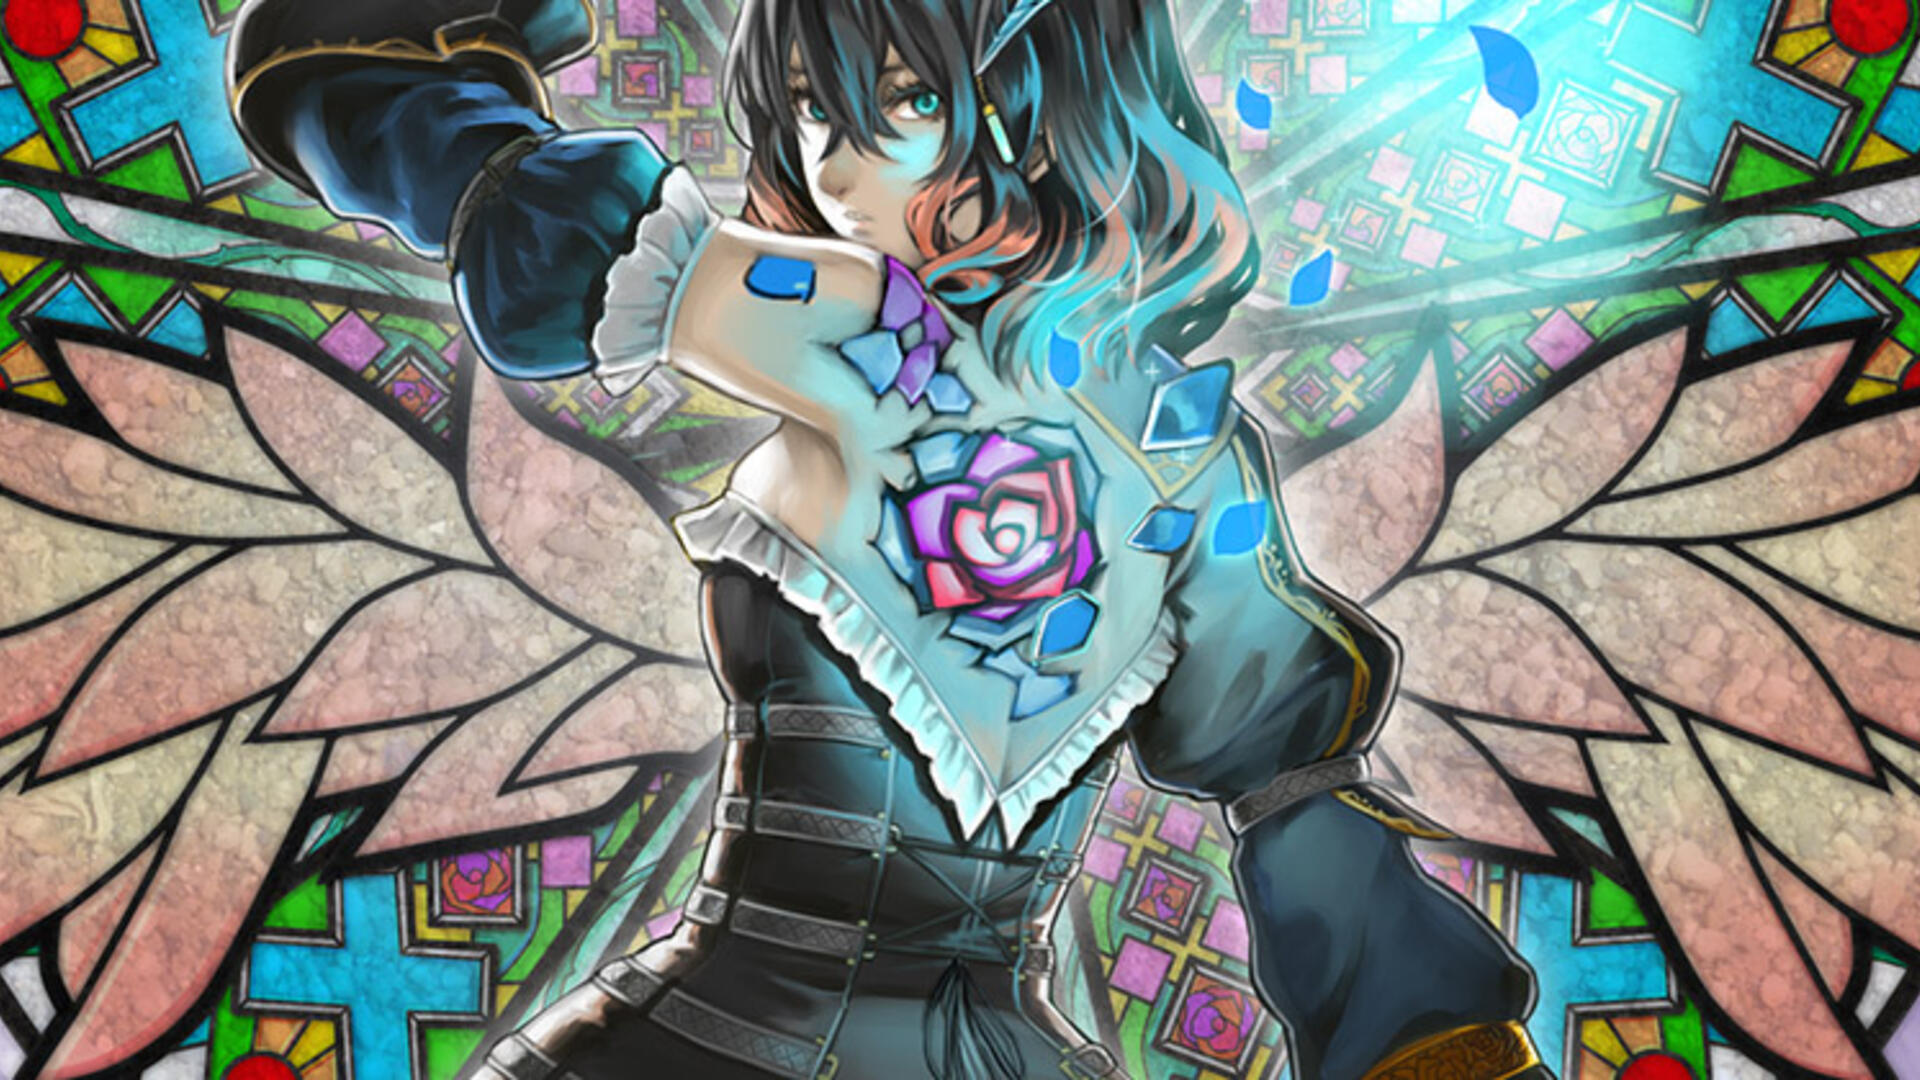 Bloodstained Delayed Into the First Half of 2018